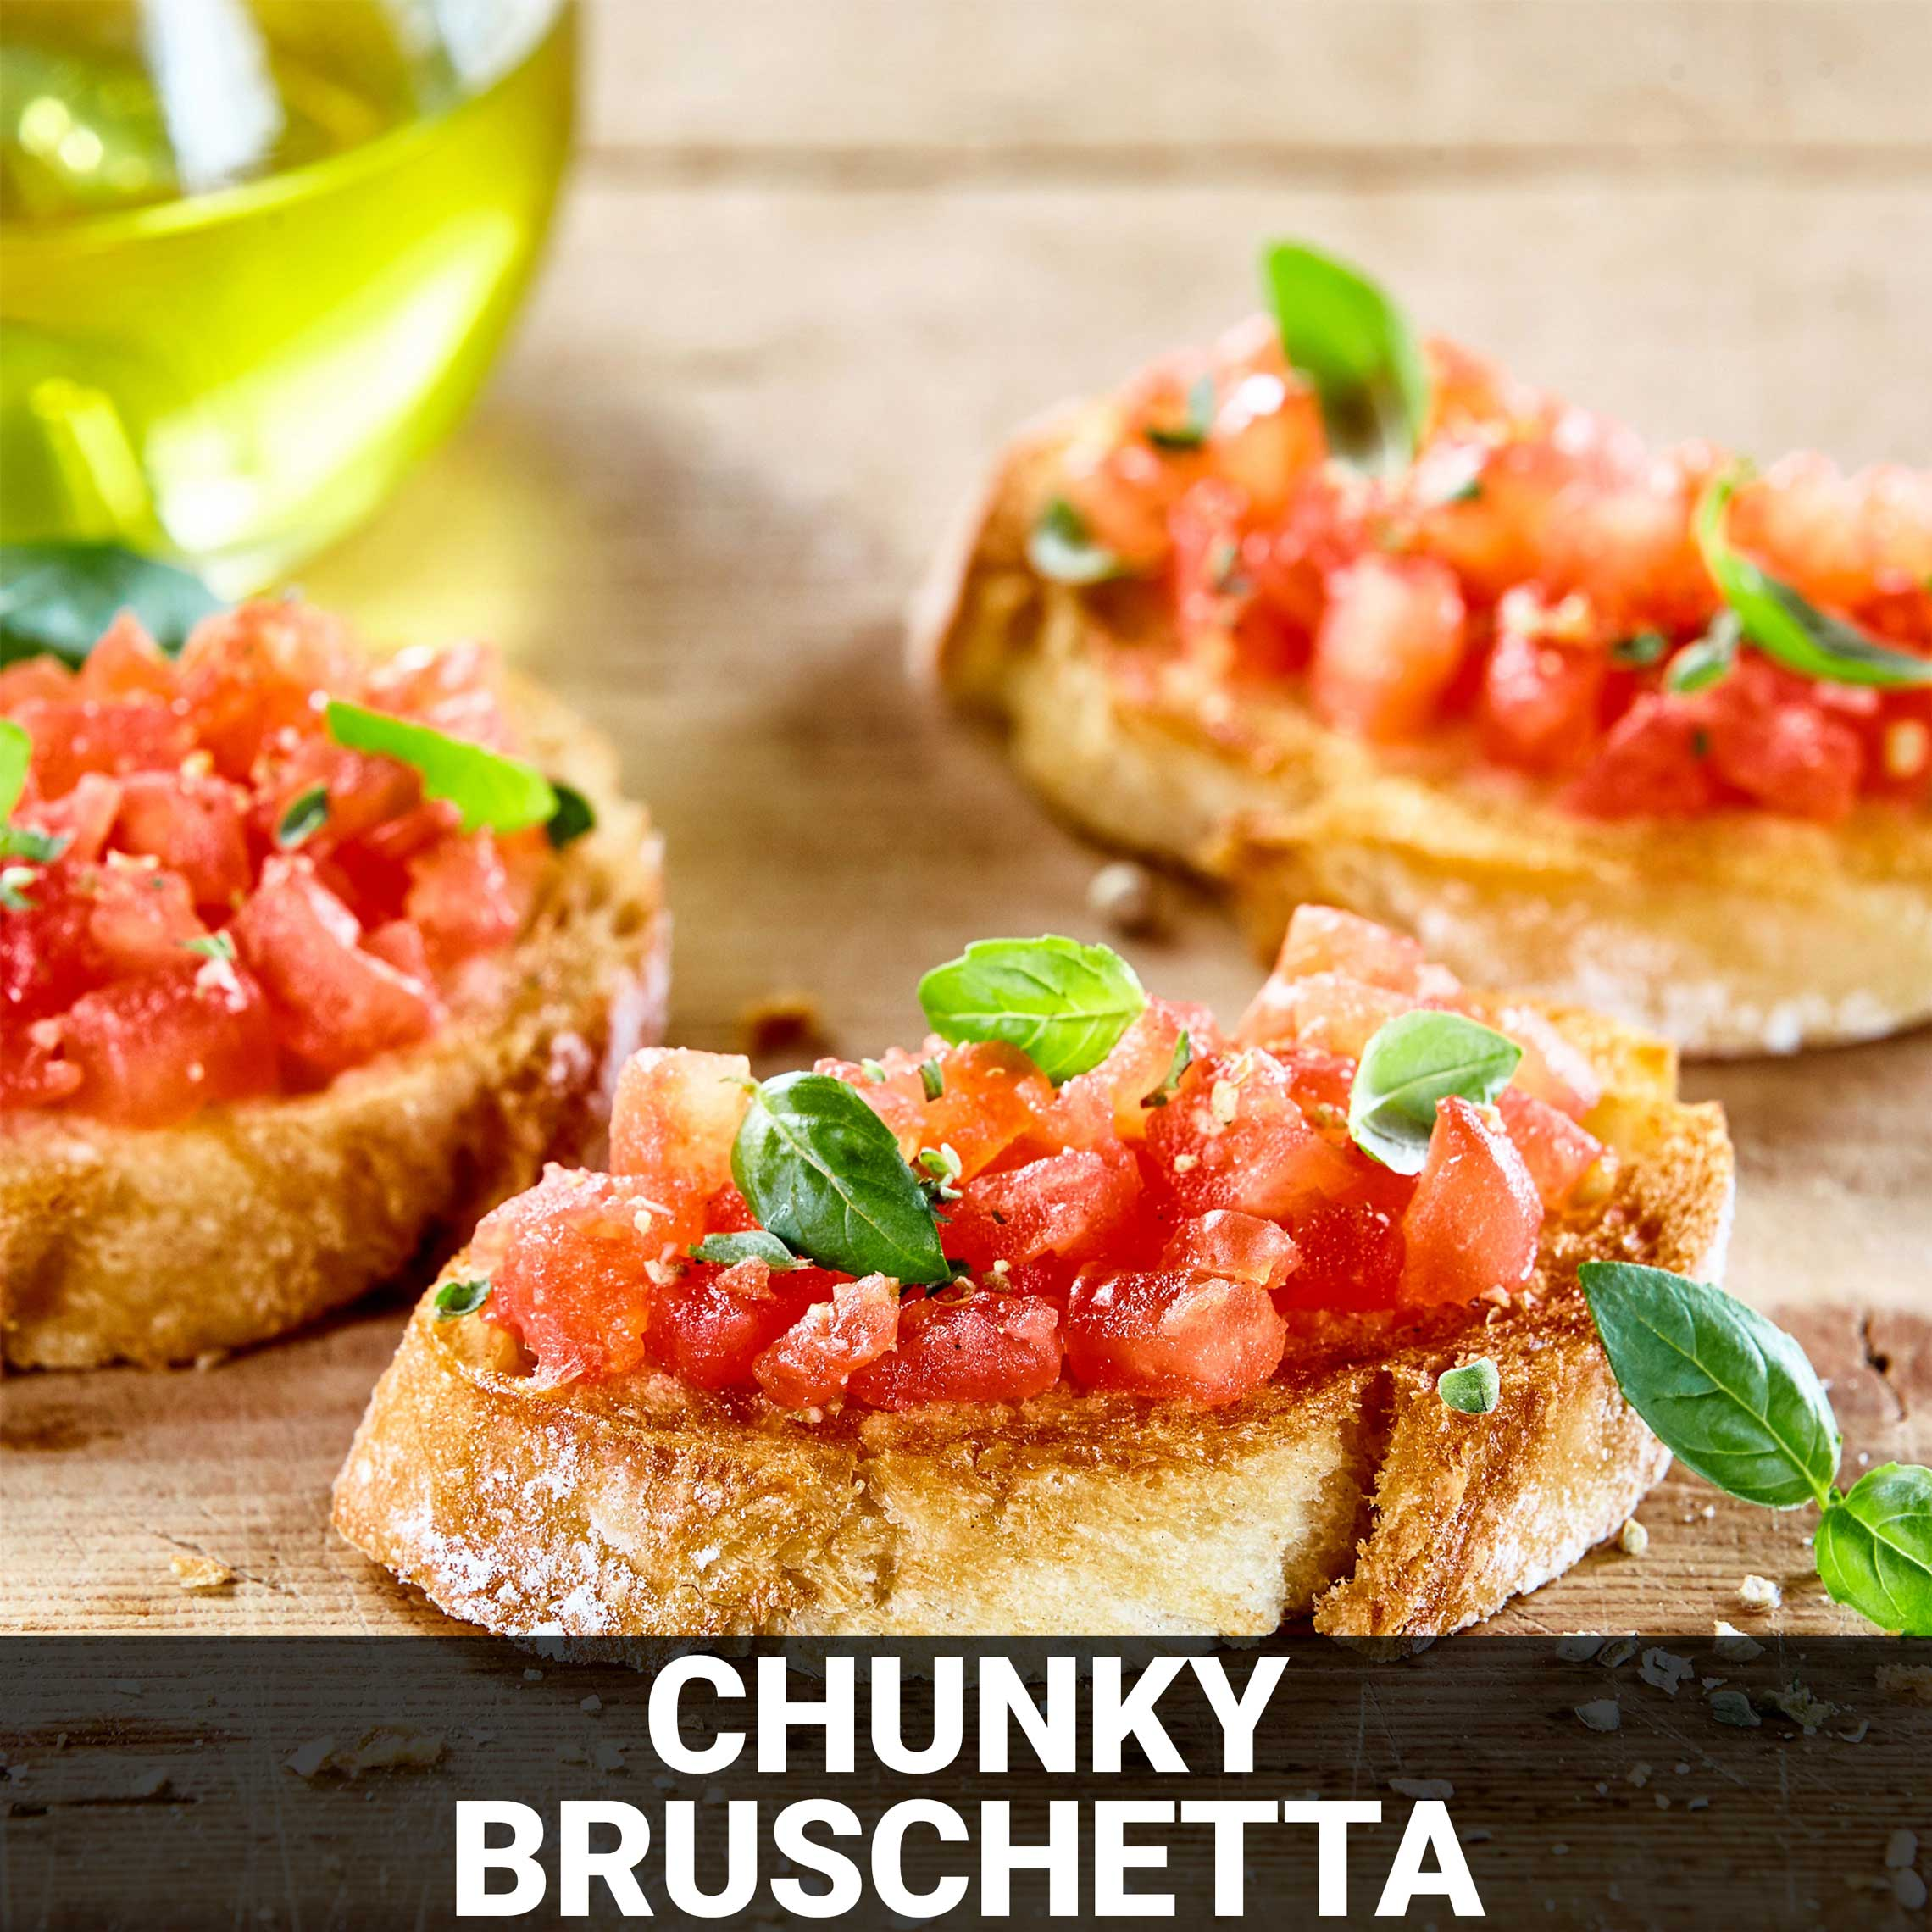 Chunky Bruschetta Recipe - Foods Alive